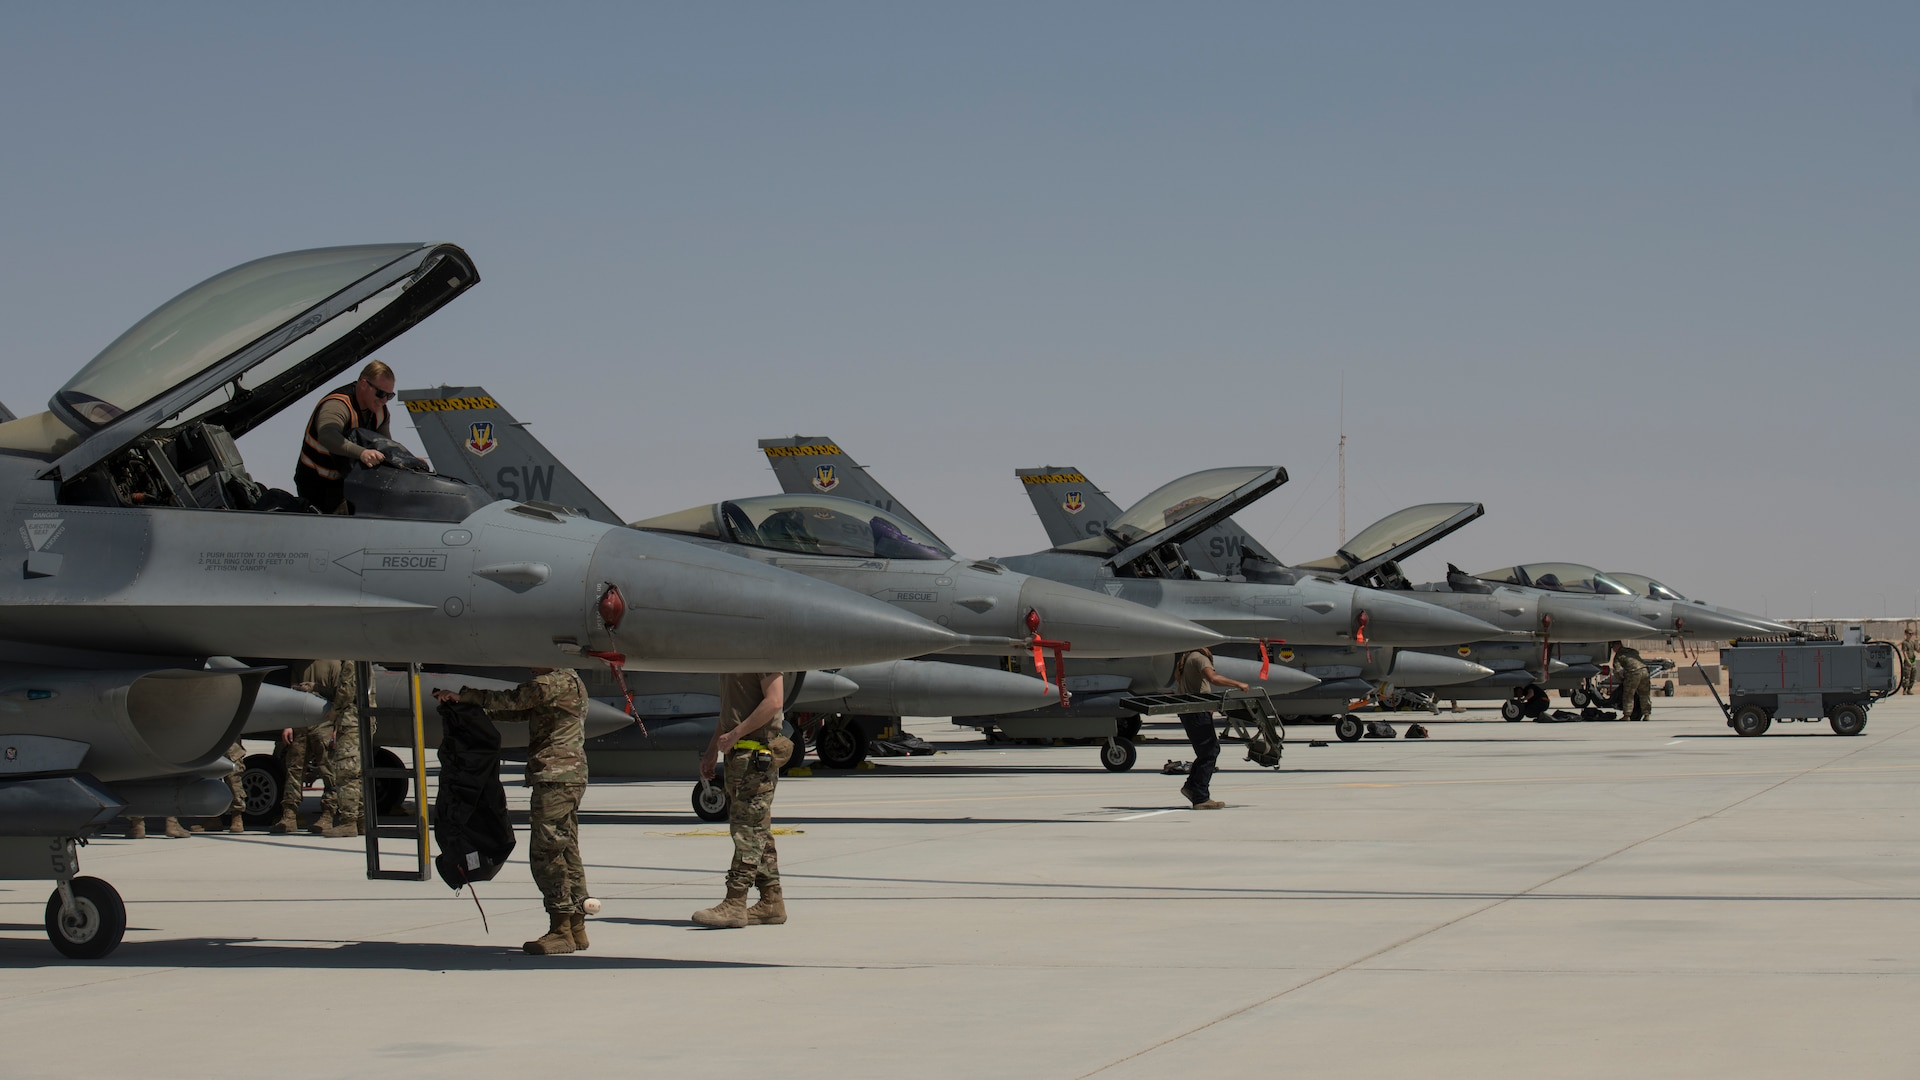 """Six U.S. Air Force F-16 """"Viper"""" Fighting Falcons assigned to the 79th Expeditionary Fighter Squadron rest on a flightline at an undisclosed location in the U.S. Central Command area of responsibility, Feb. 14, 2020."""